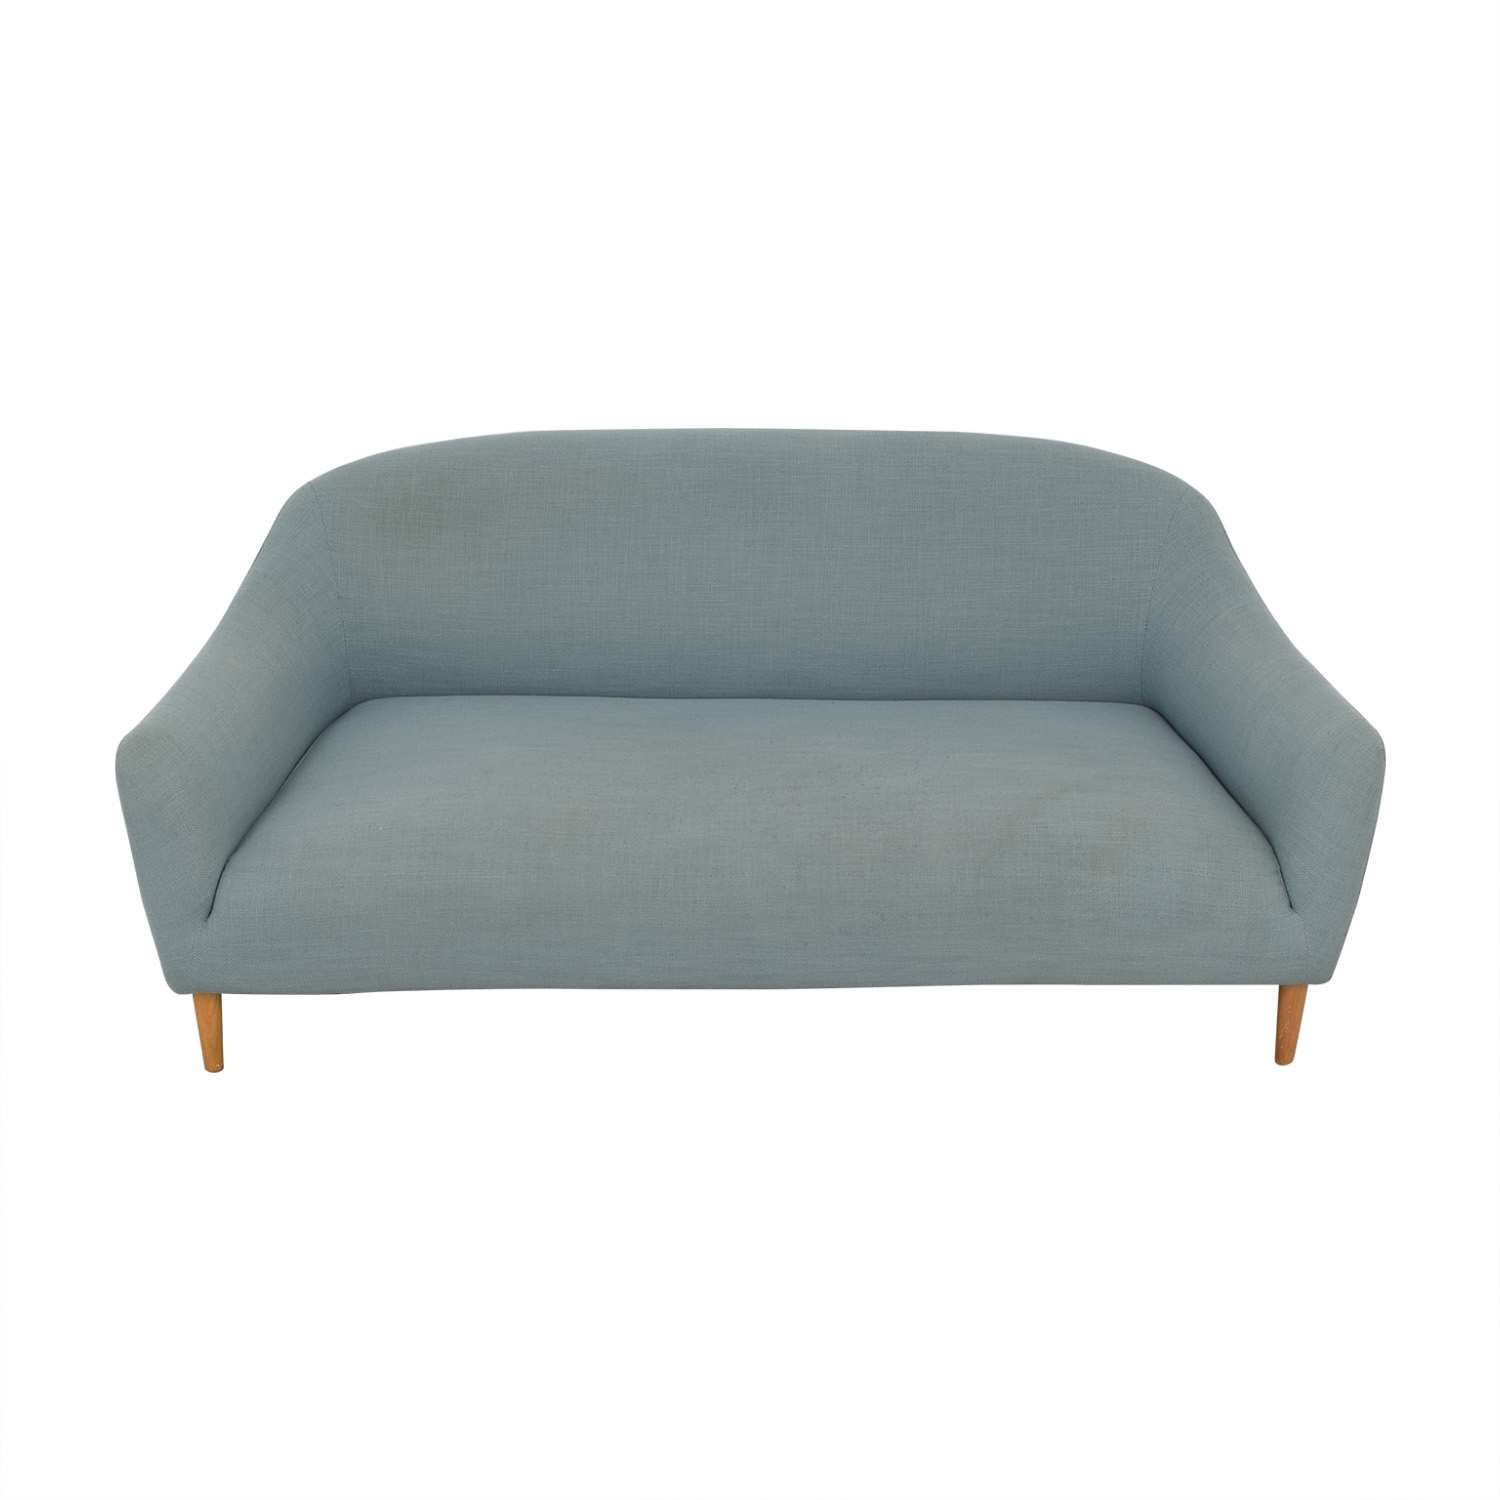 Crate & Barrel Crate & Barrel Pennie Sofa discount